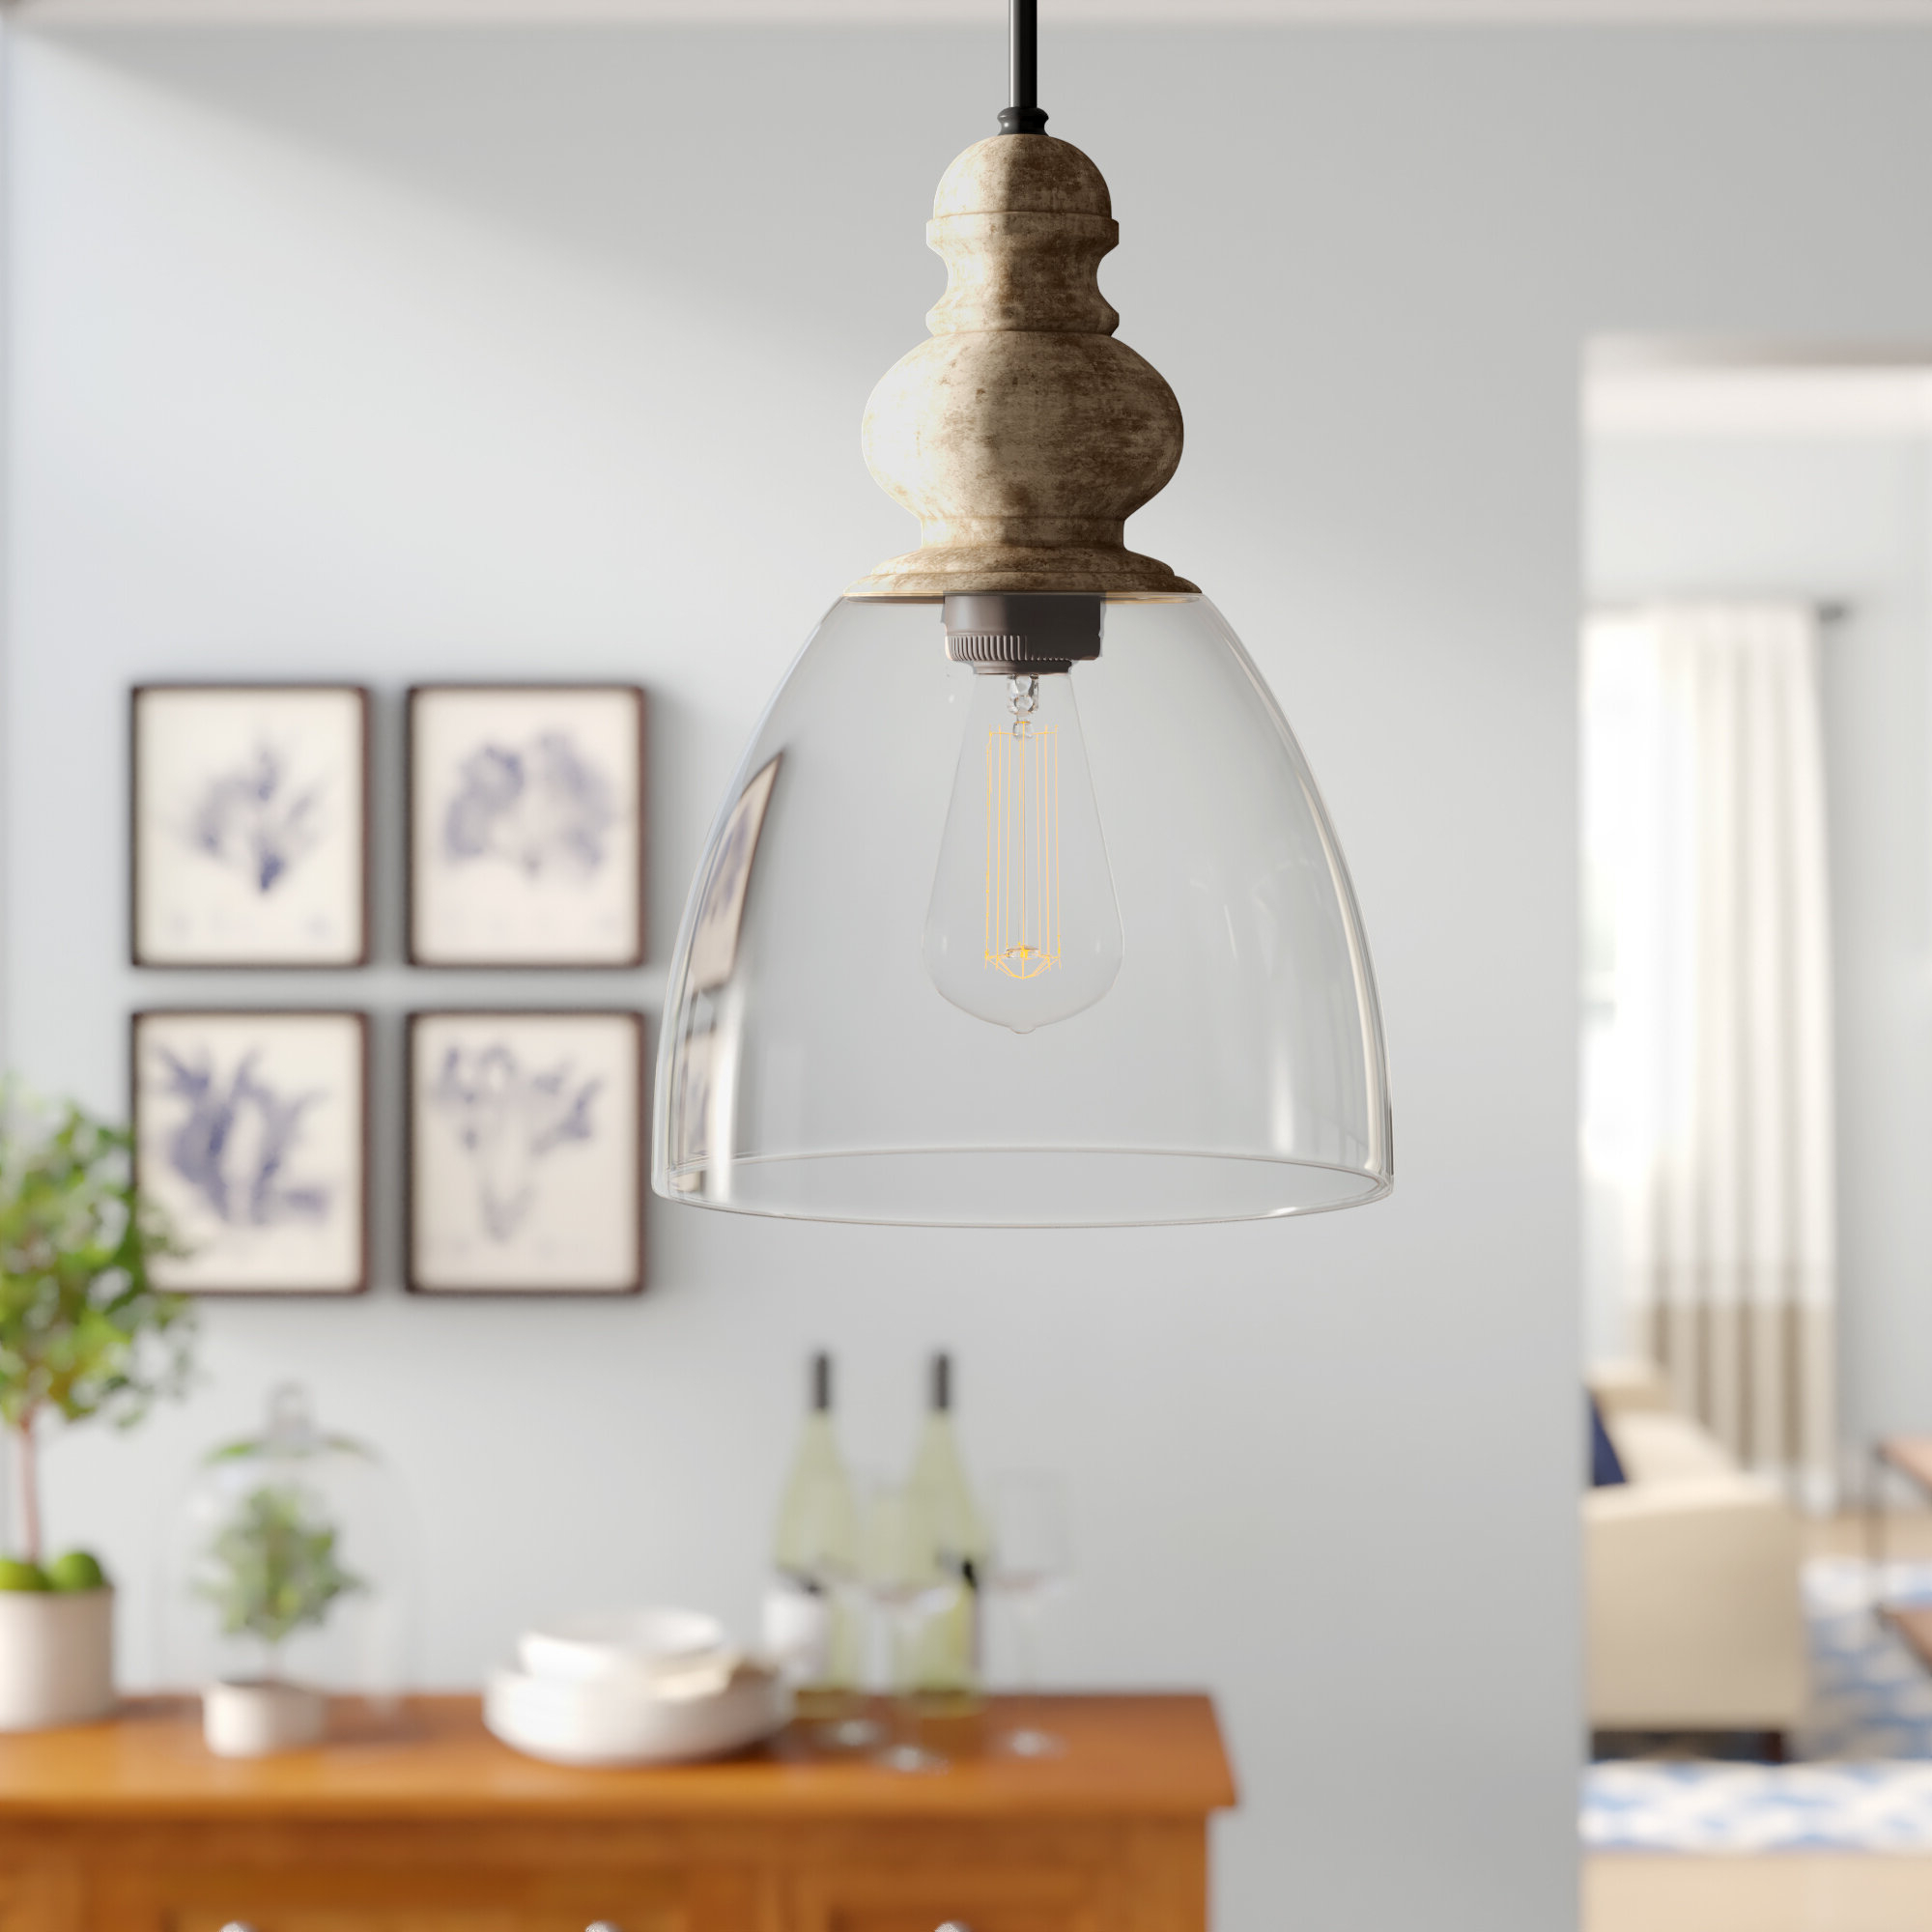 Widely Used Lemelle 1 Light Single Bell Pendant Within 1 Light Single Bell Pendants (View 3 of 20)